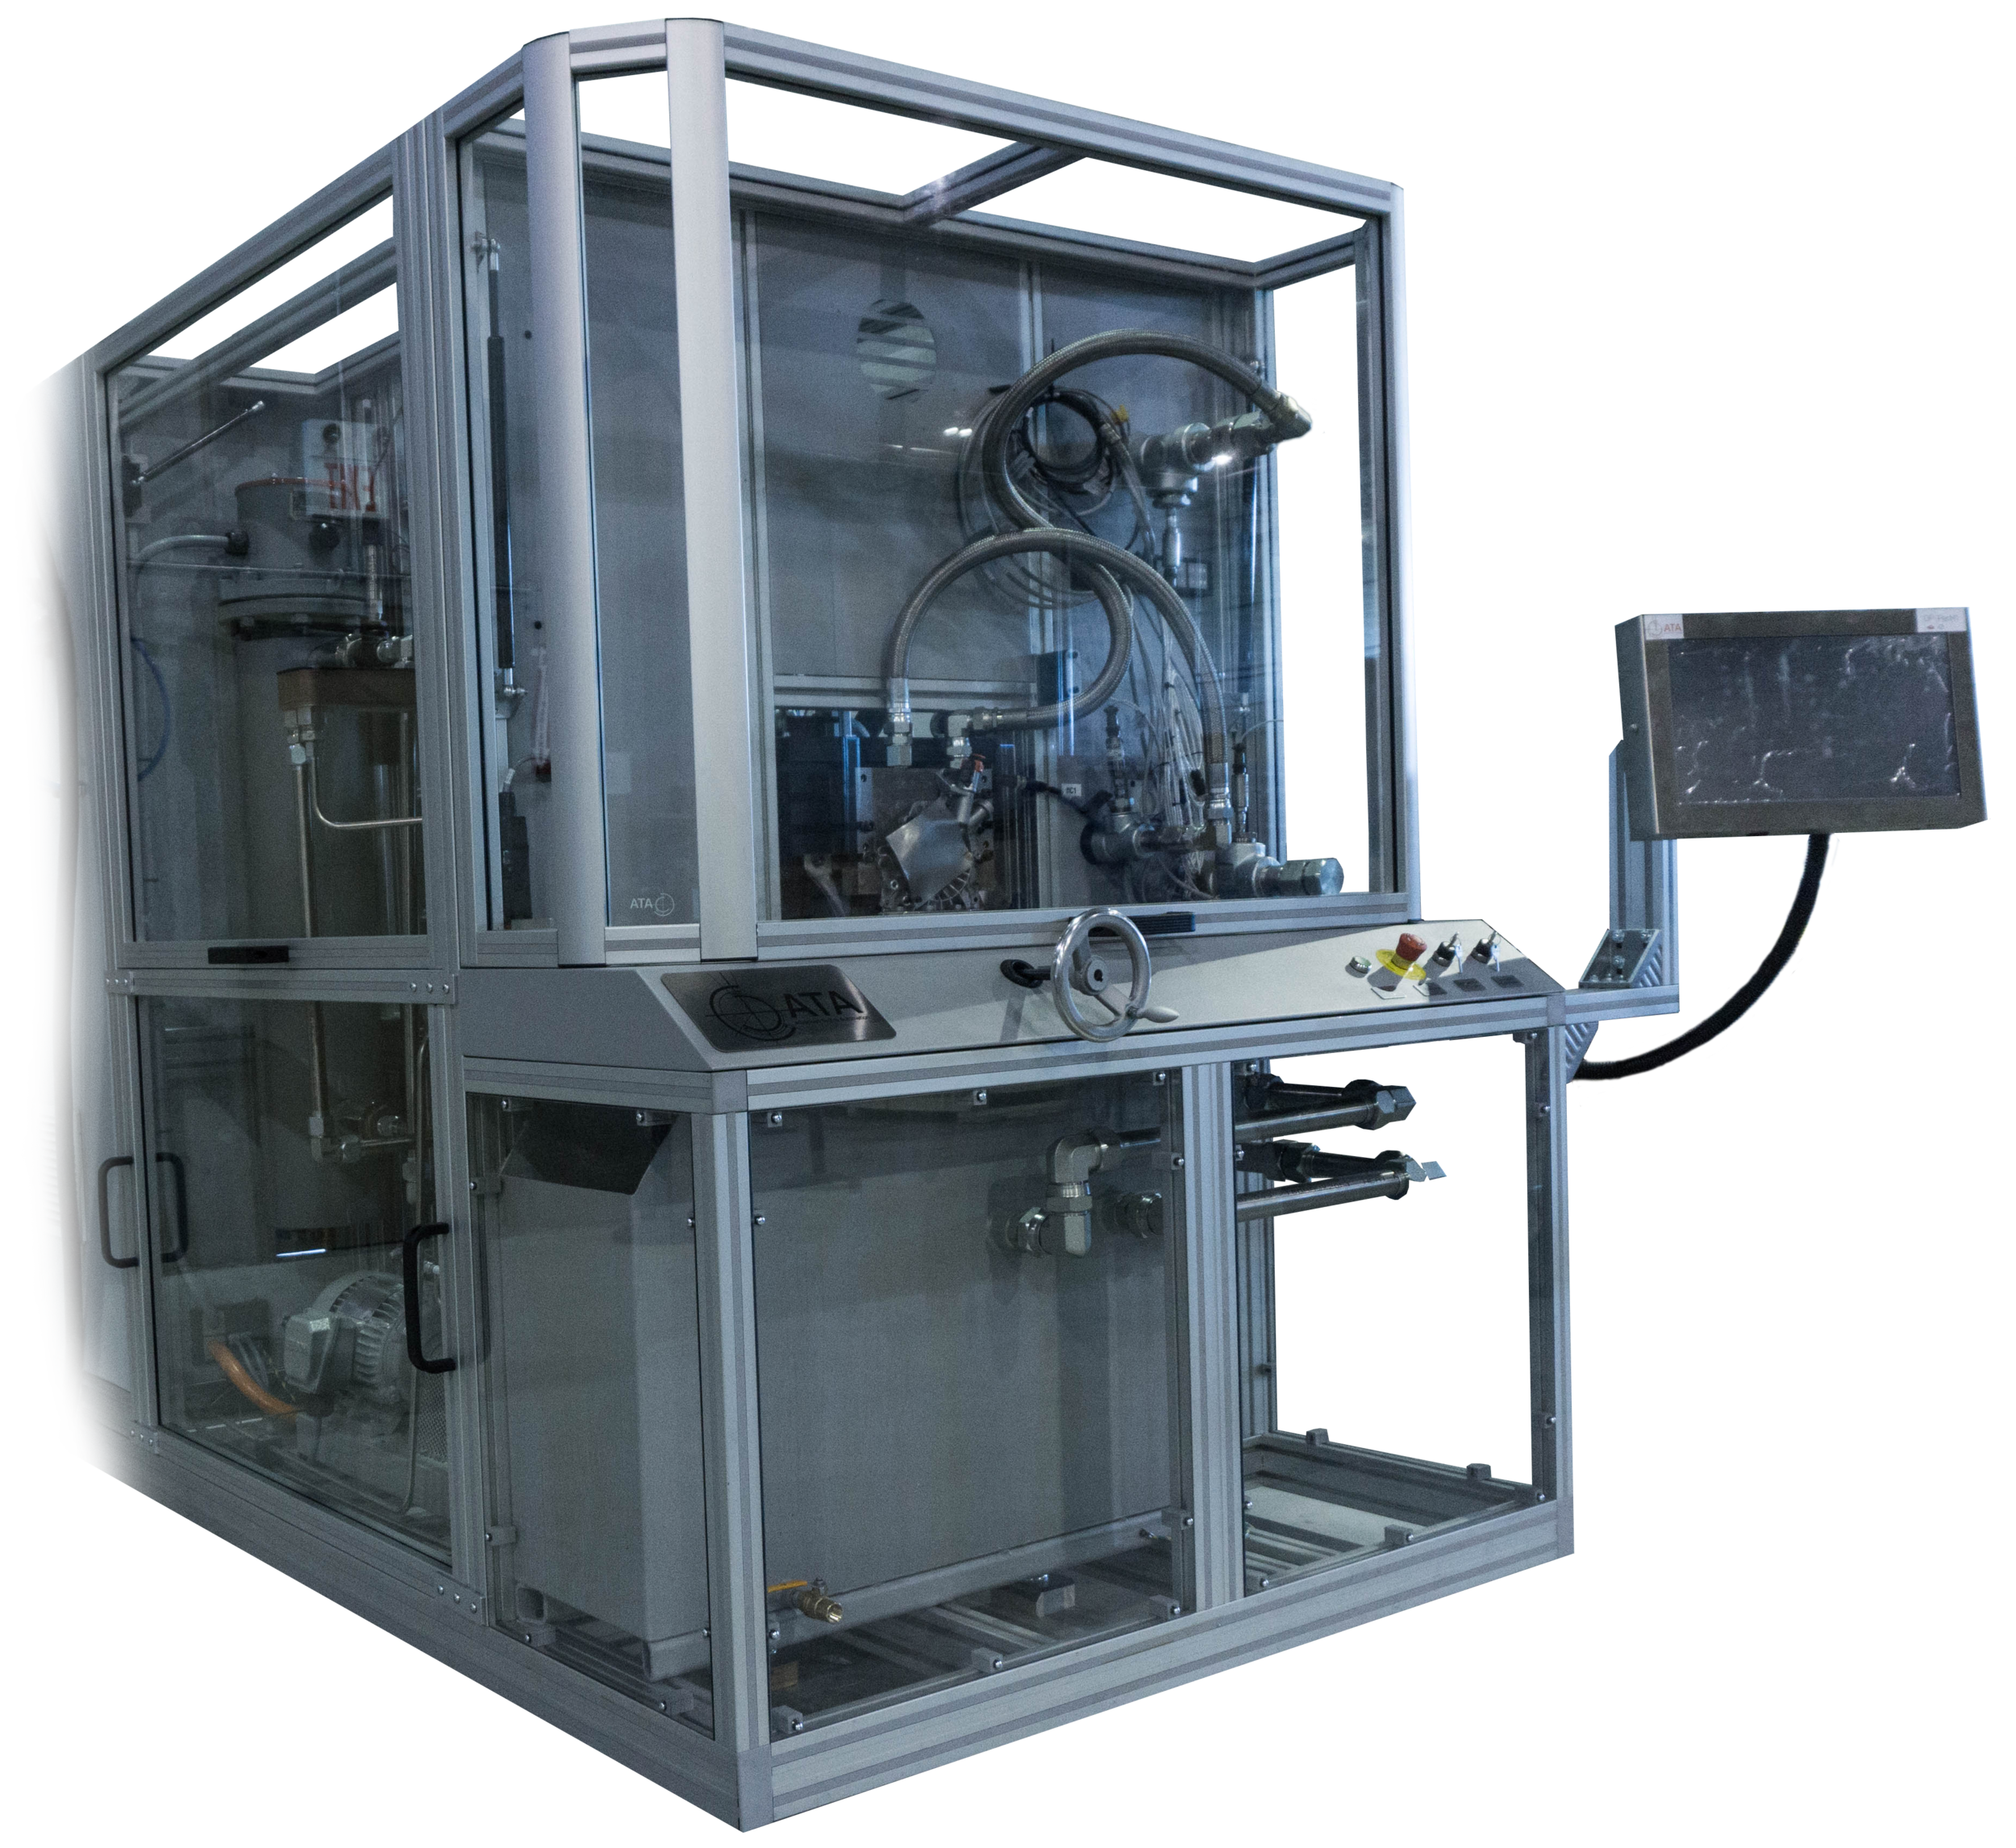 Fluid and Hydraulic Component Test Systems. Oil pumps, water pumps, coolant valves, etc.